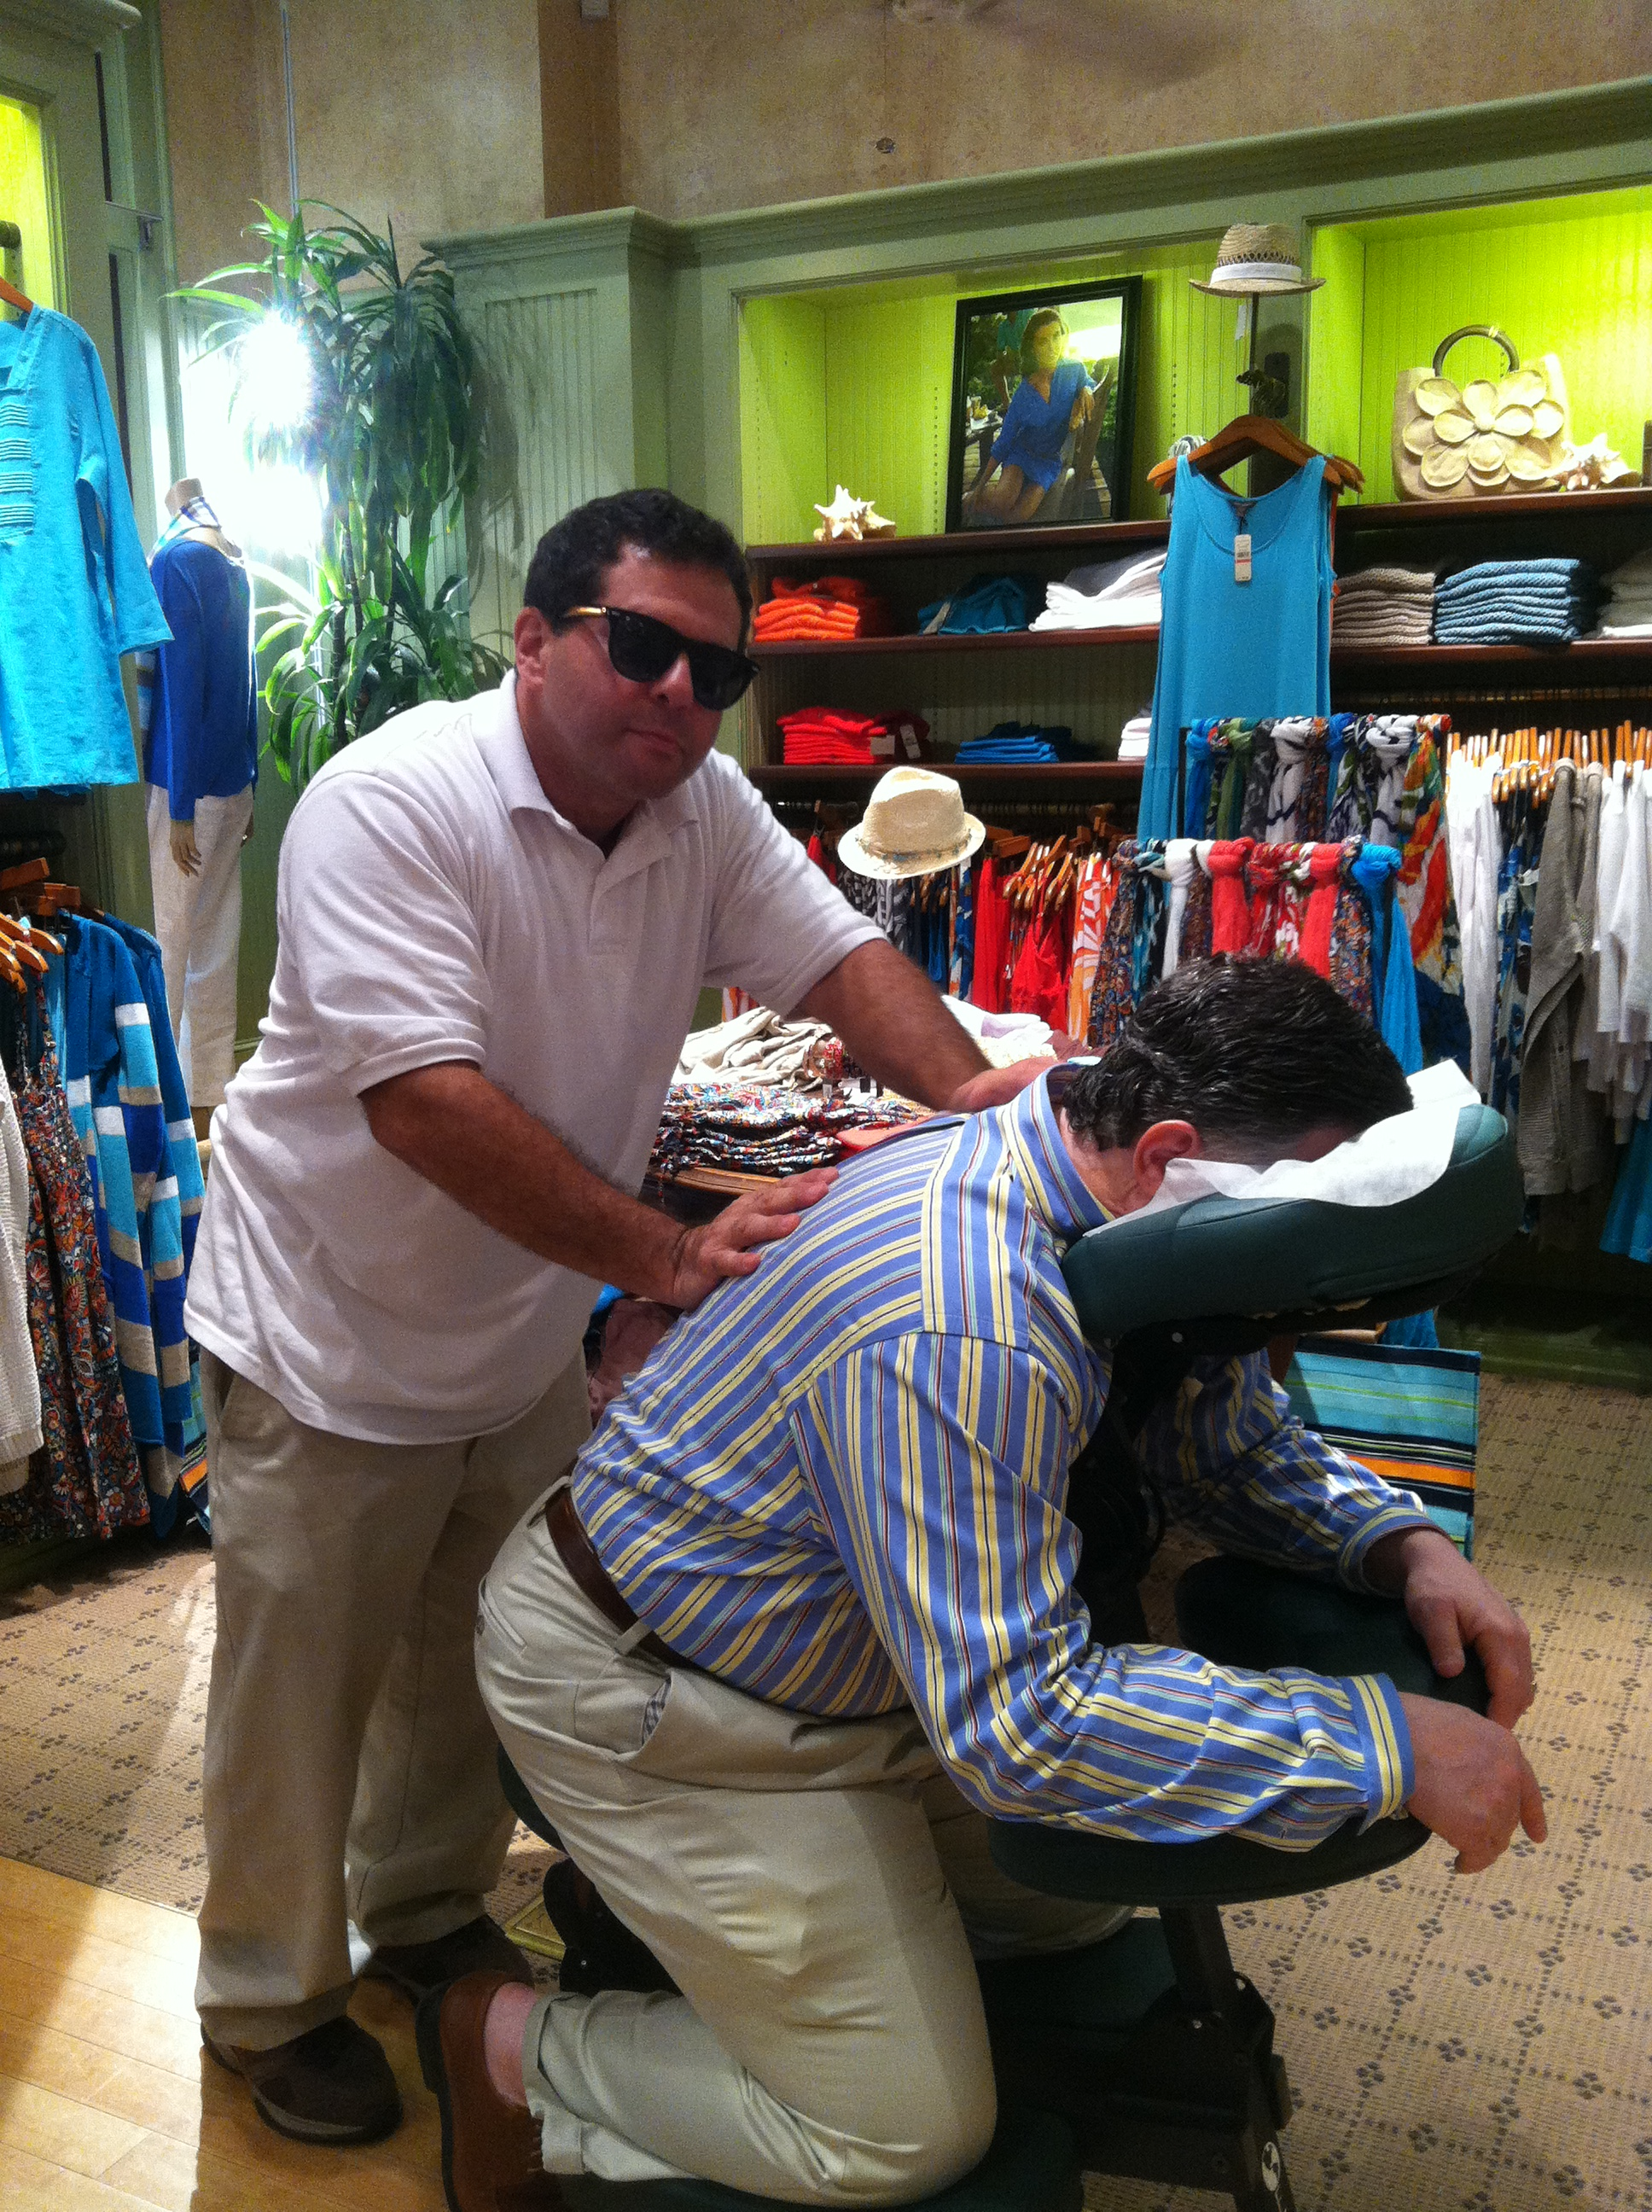 Massage is serious, but it can also be fun too.  My gig at Tommy Bahama made me want to get dressed appropriately for the job.